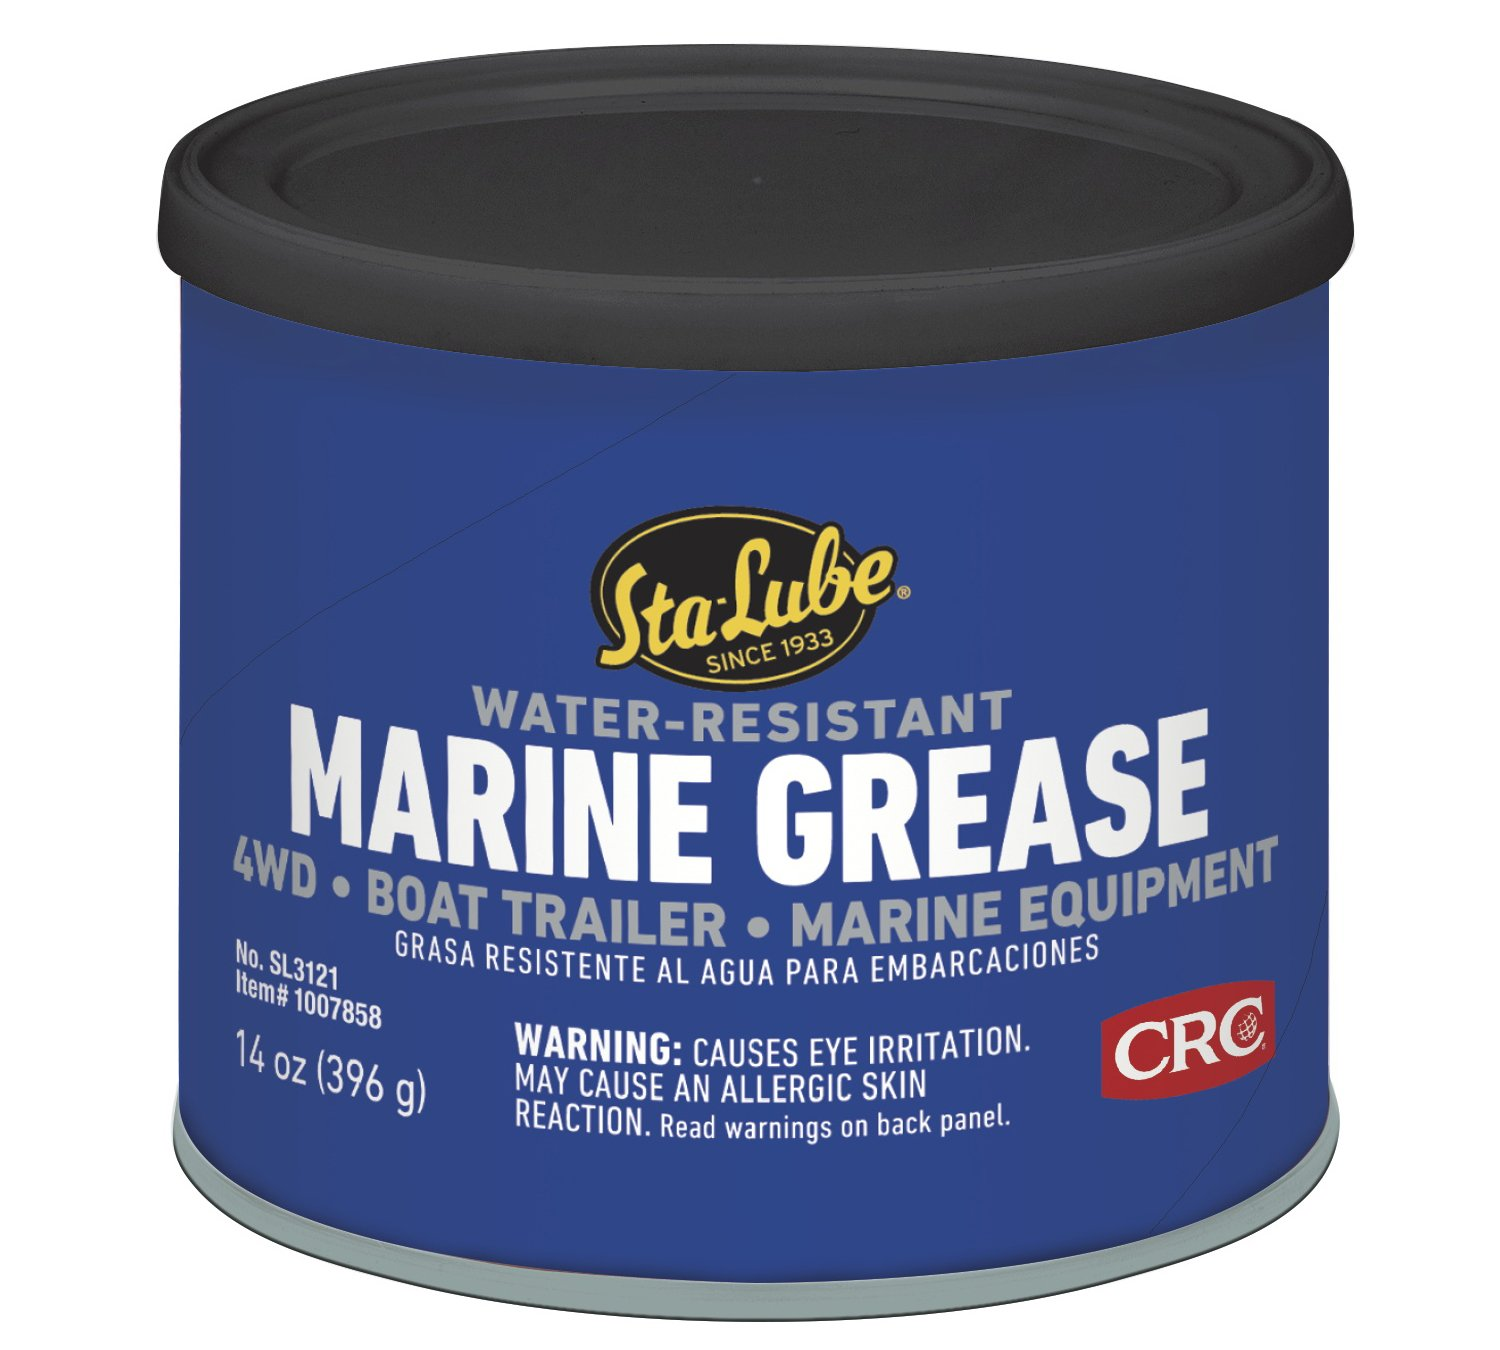 Sta-Lube SL3121 Marine Grease